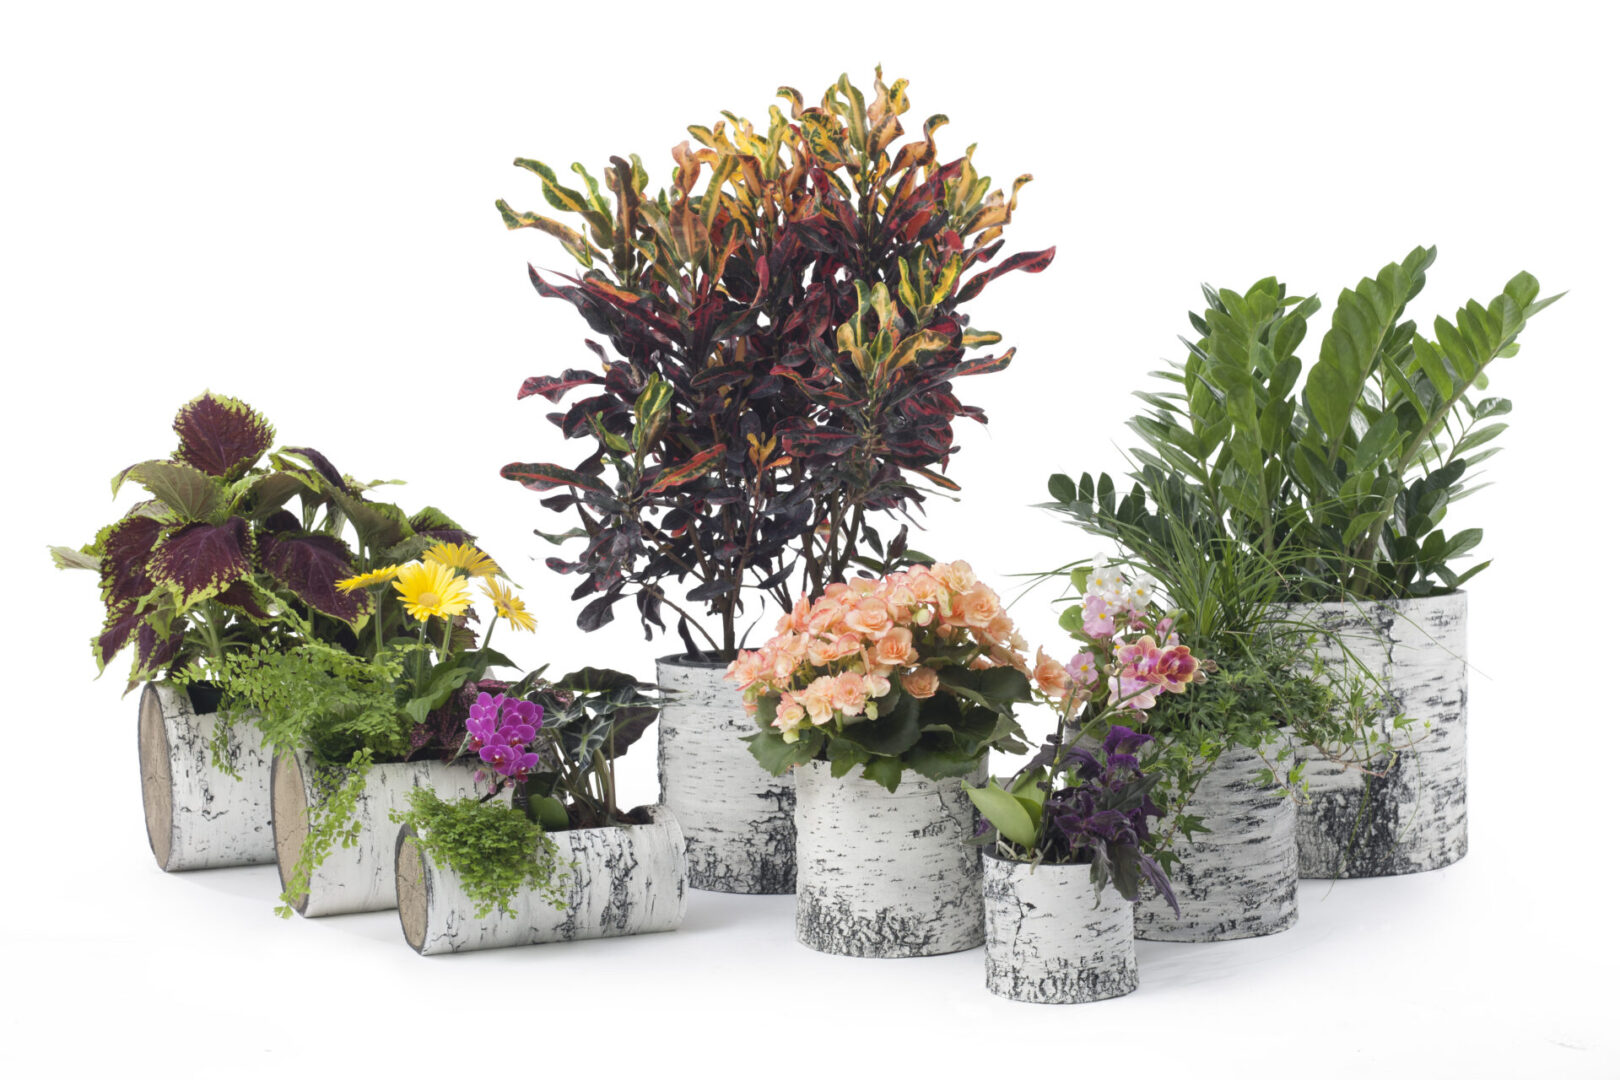 Surreal Planters – A Nature Innovations Brand